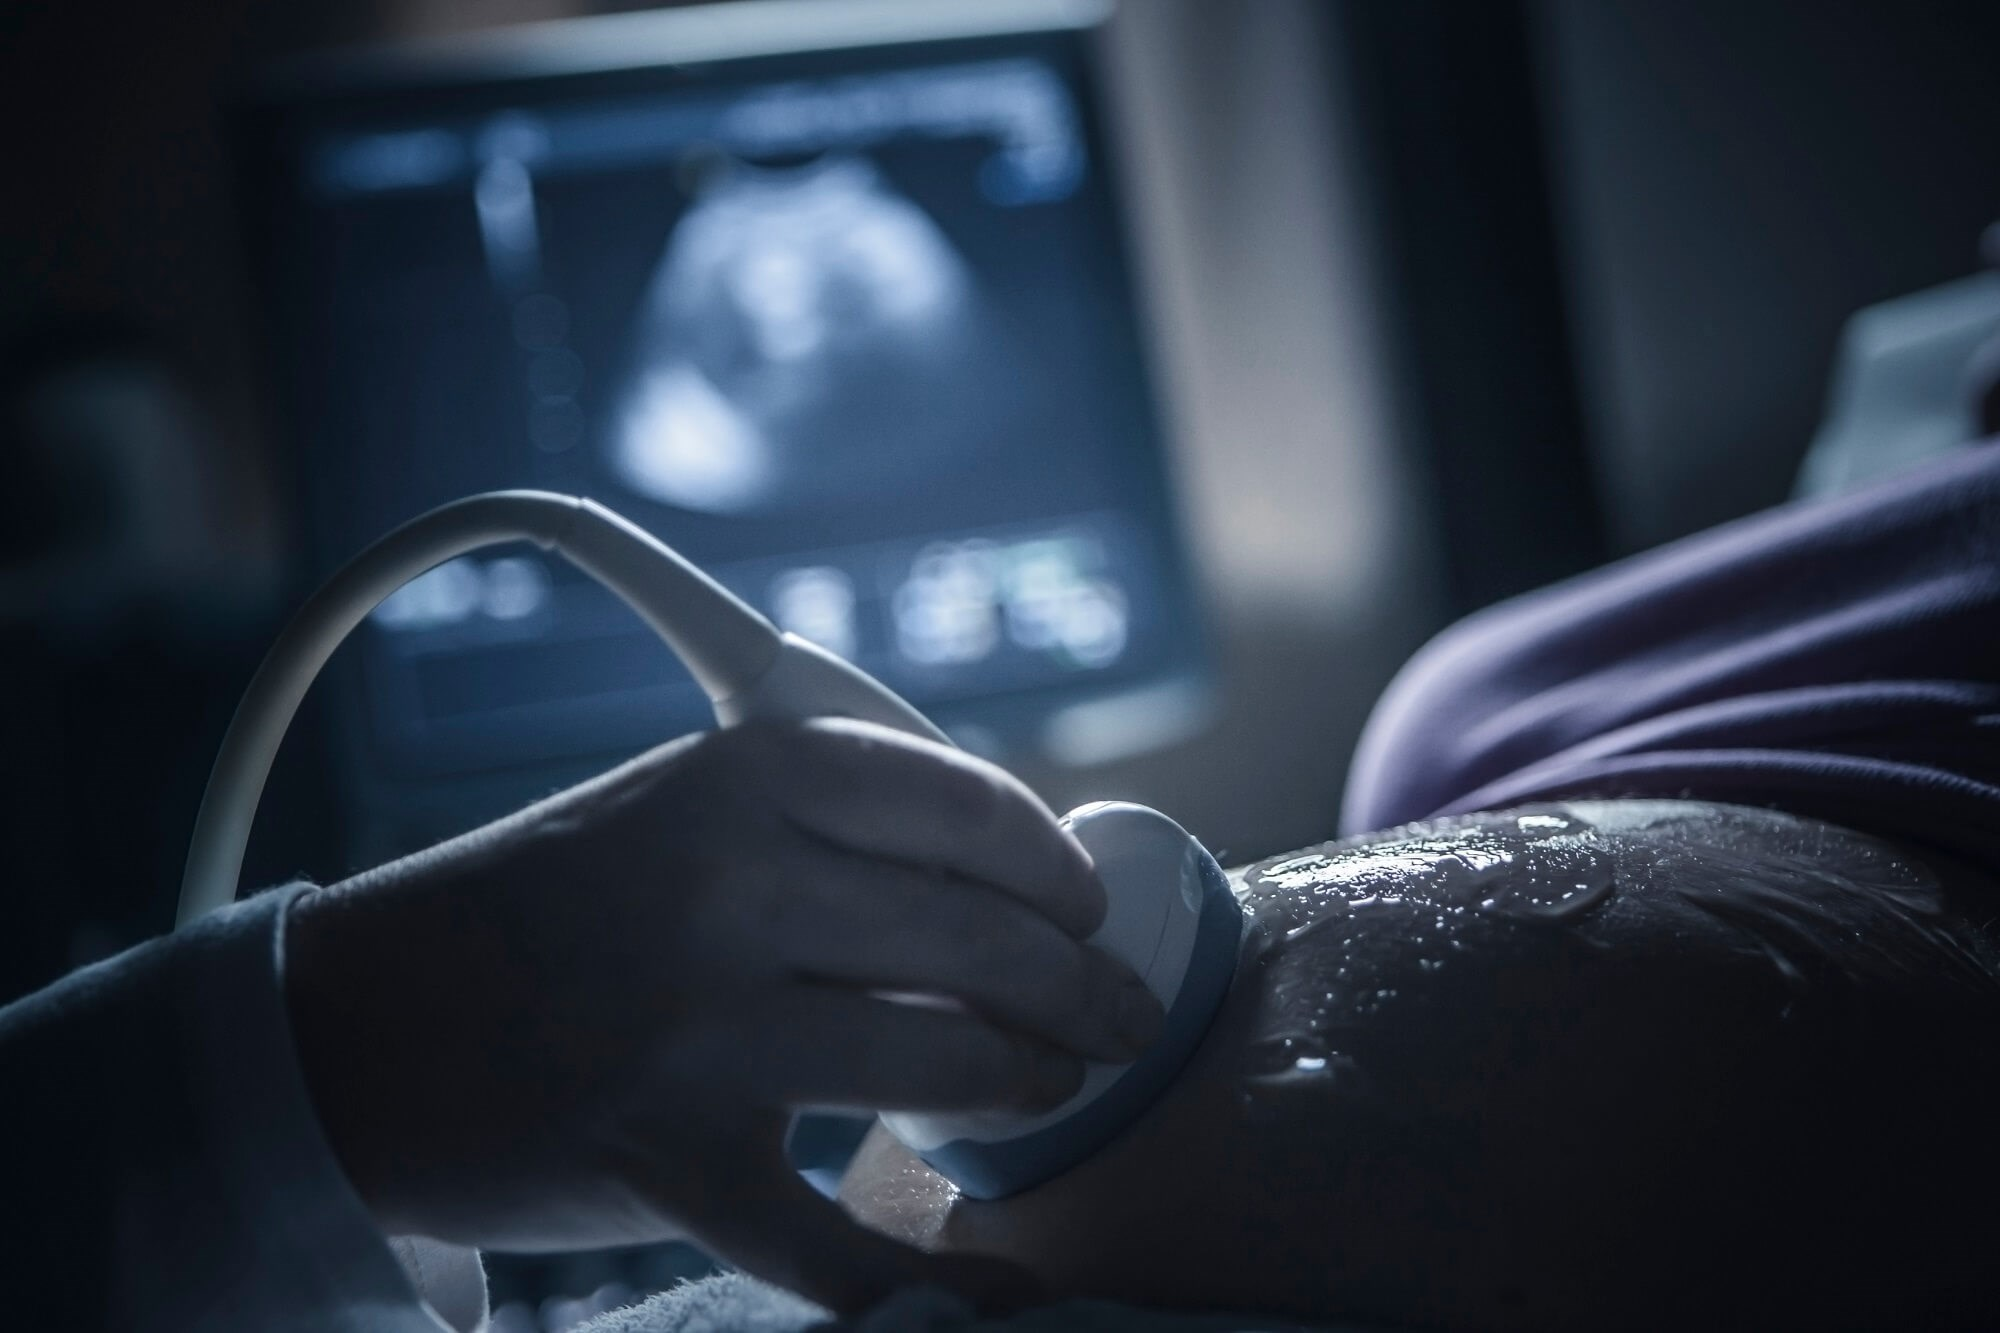 Data highlight the need for new interventions to improve obstetric outcomes in this patient population.